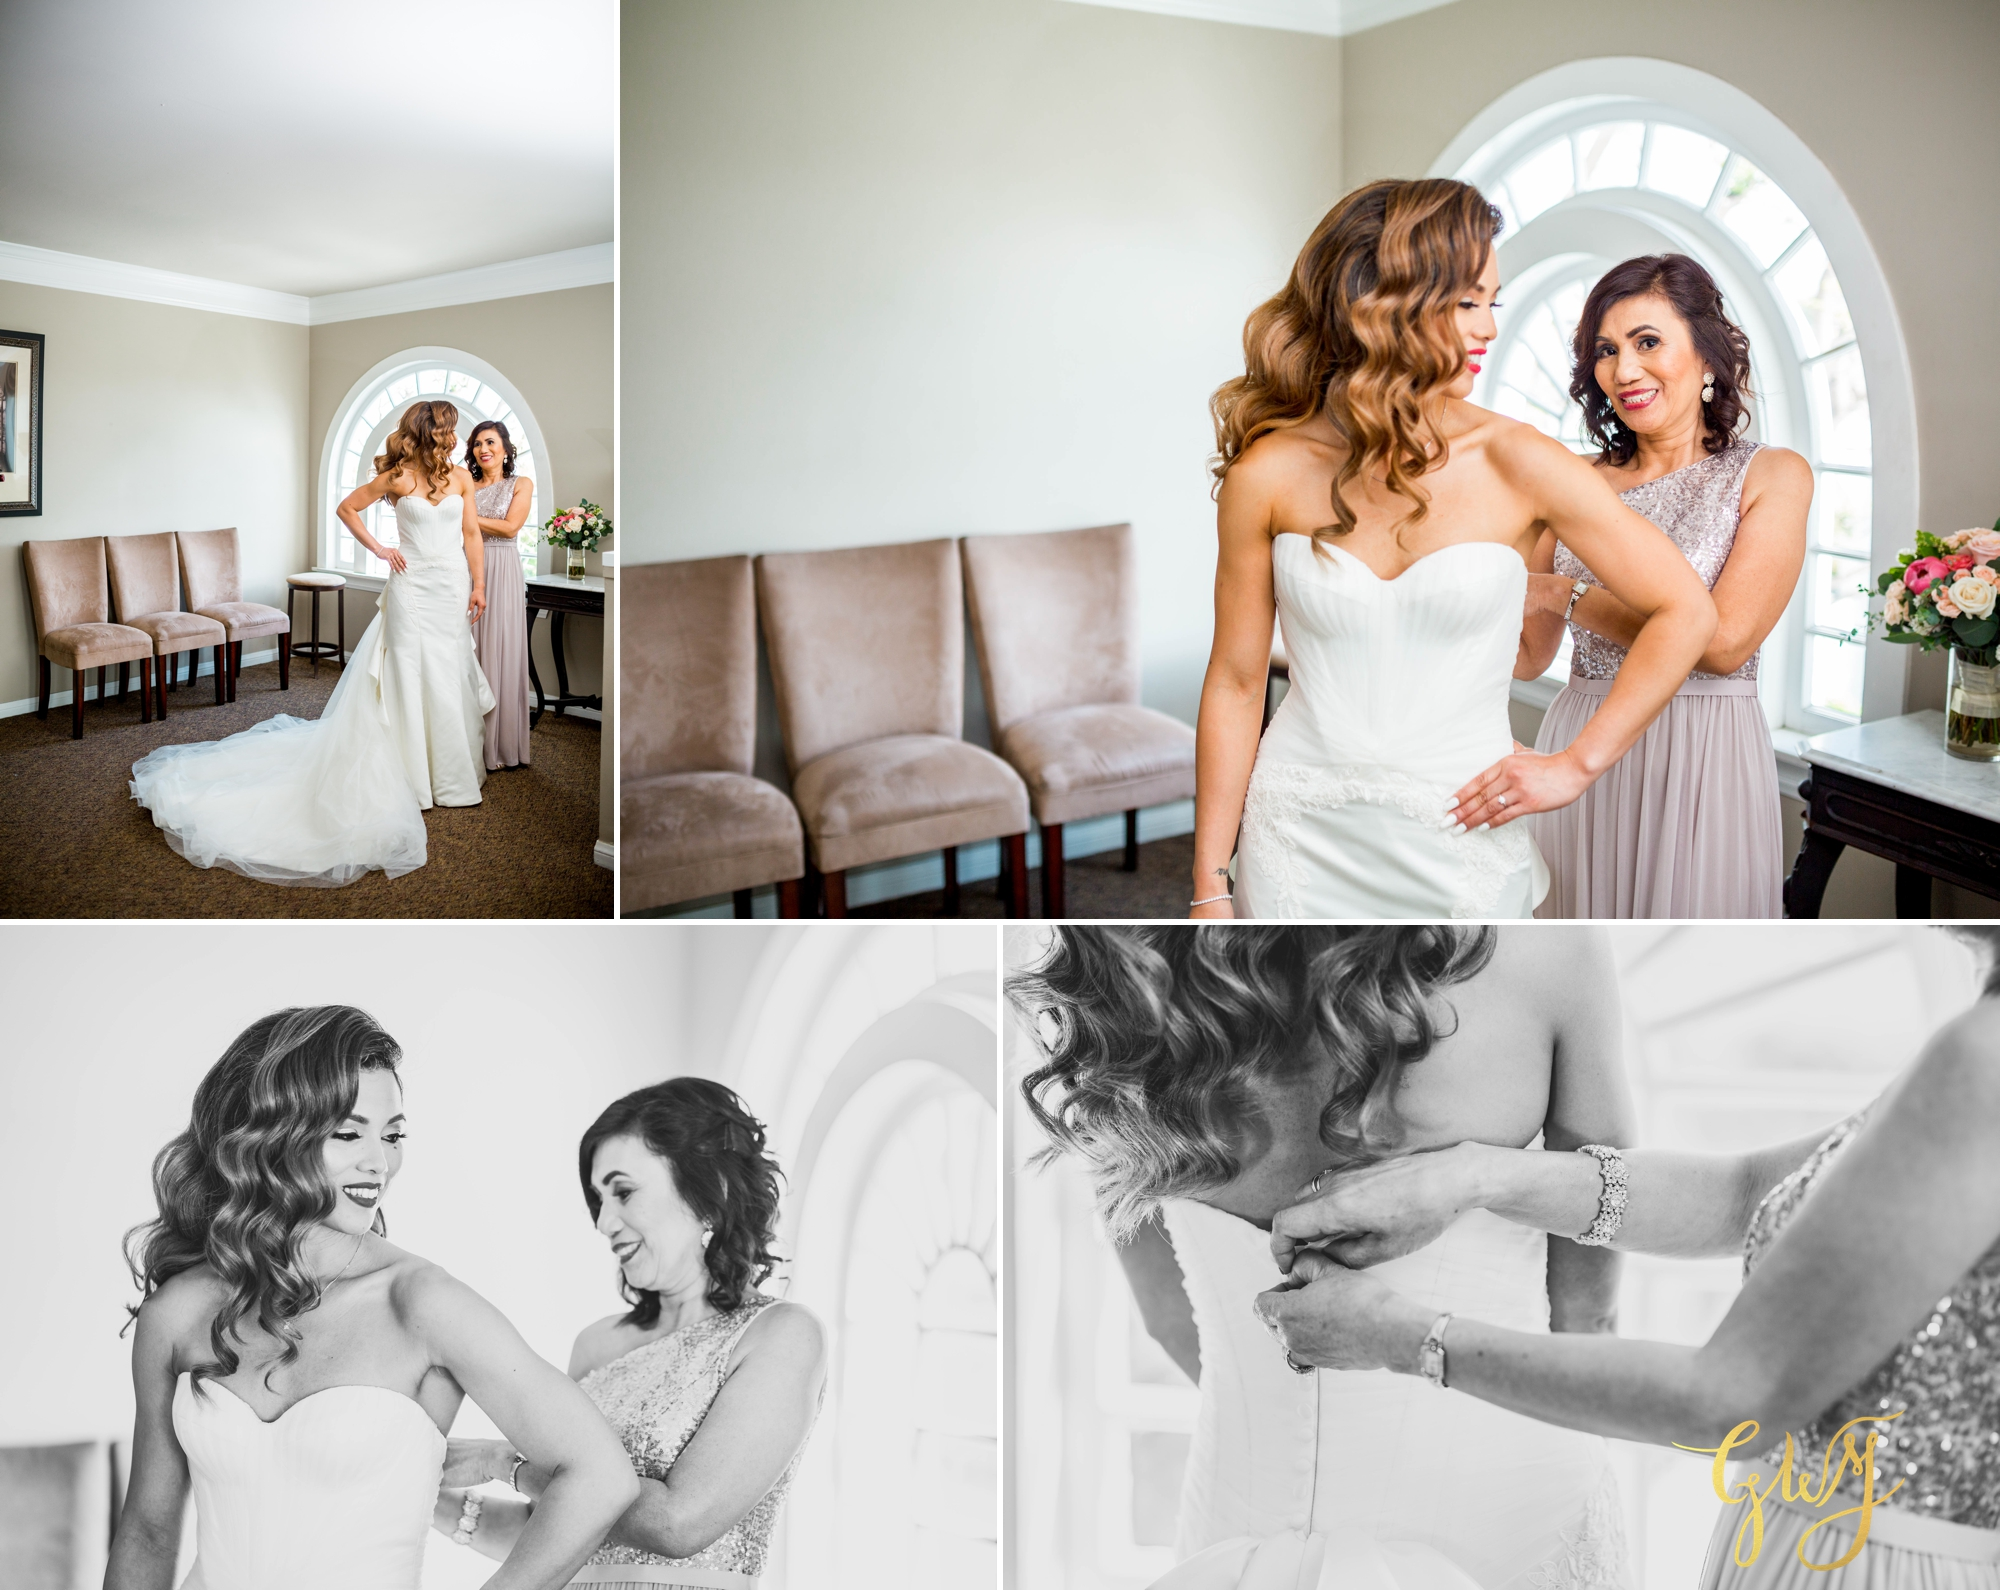 Andy + Caselyn's White House Event Center Orange County Spring Wedding by Glass Woods Media 8.jpg